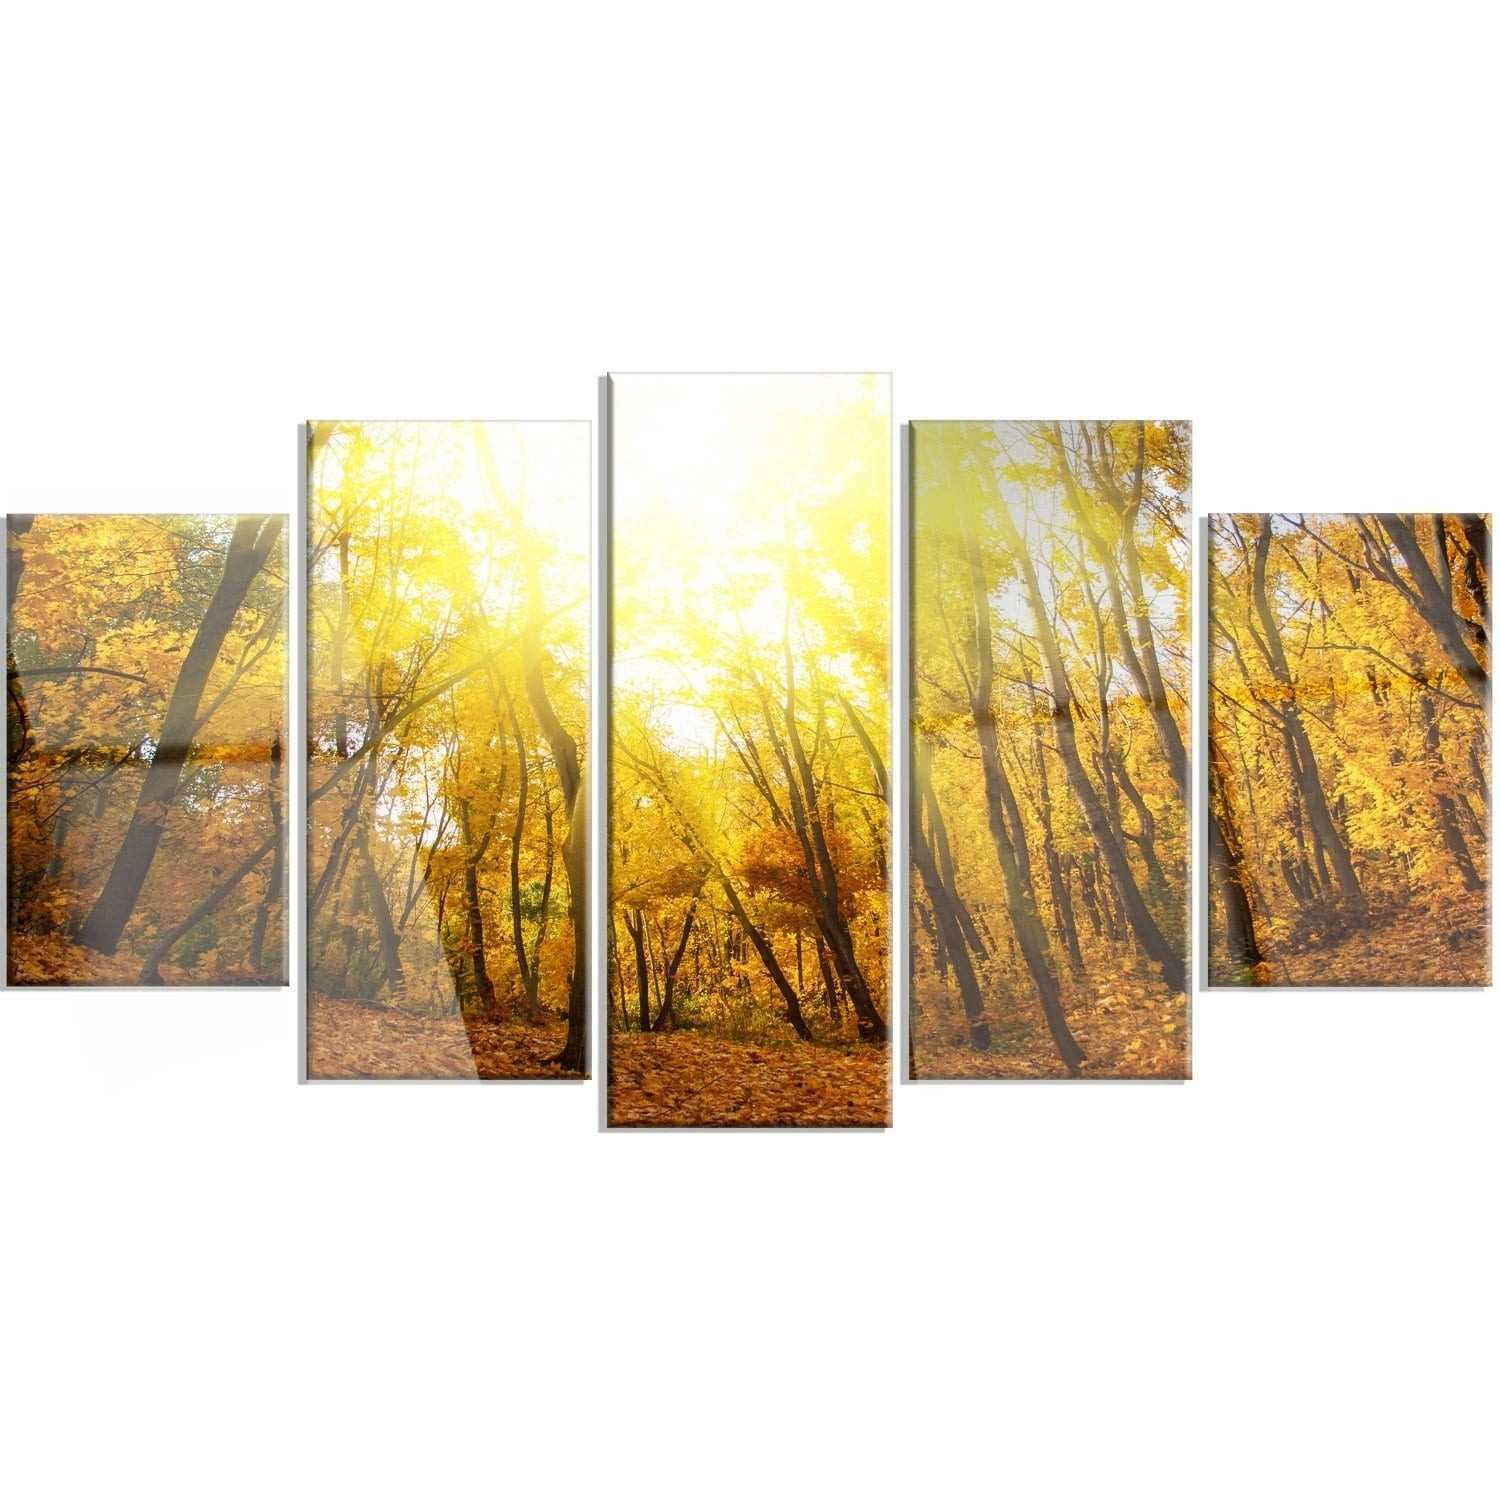 Best Of Peel and Stick Wood Wall Decor | Wall Art Ideas